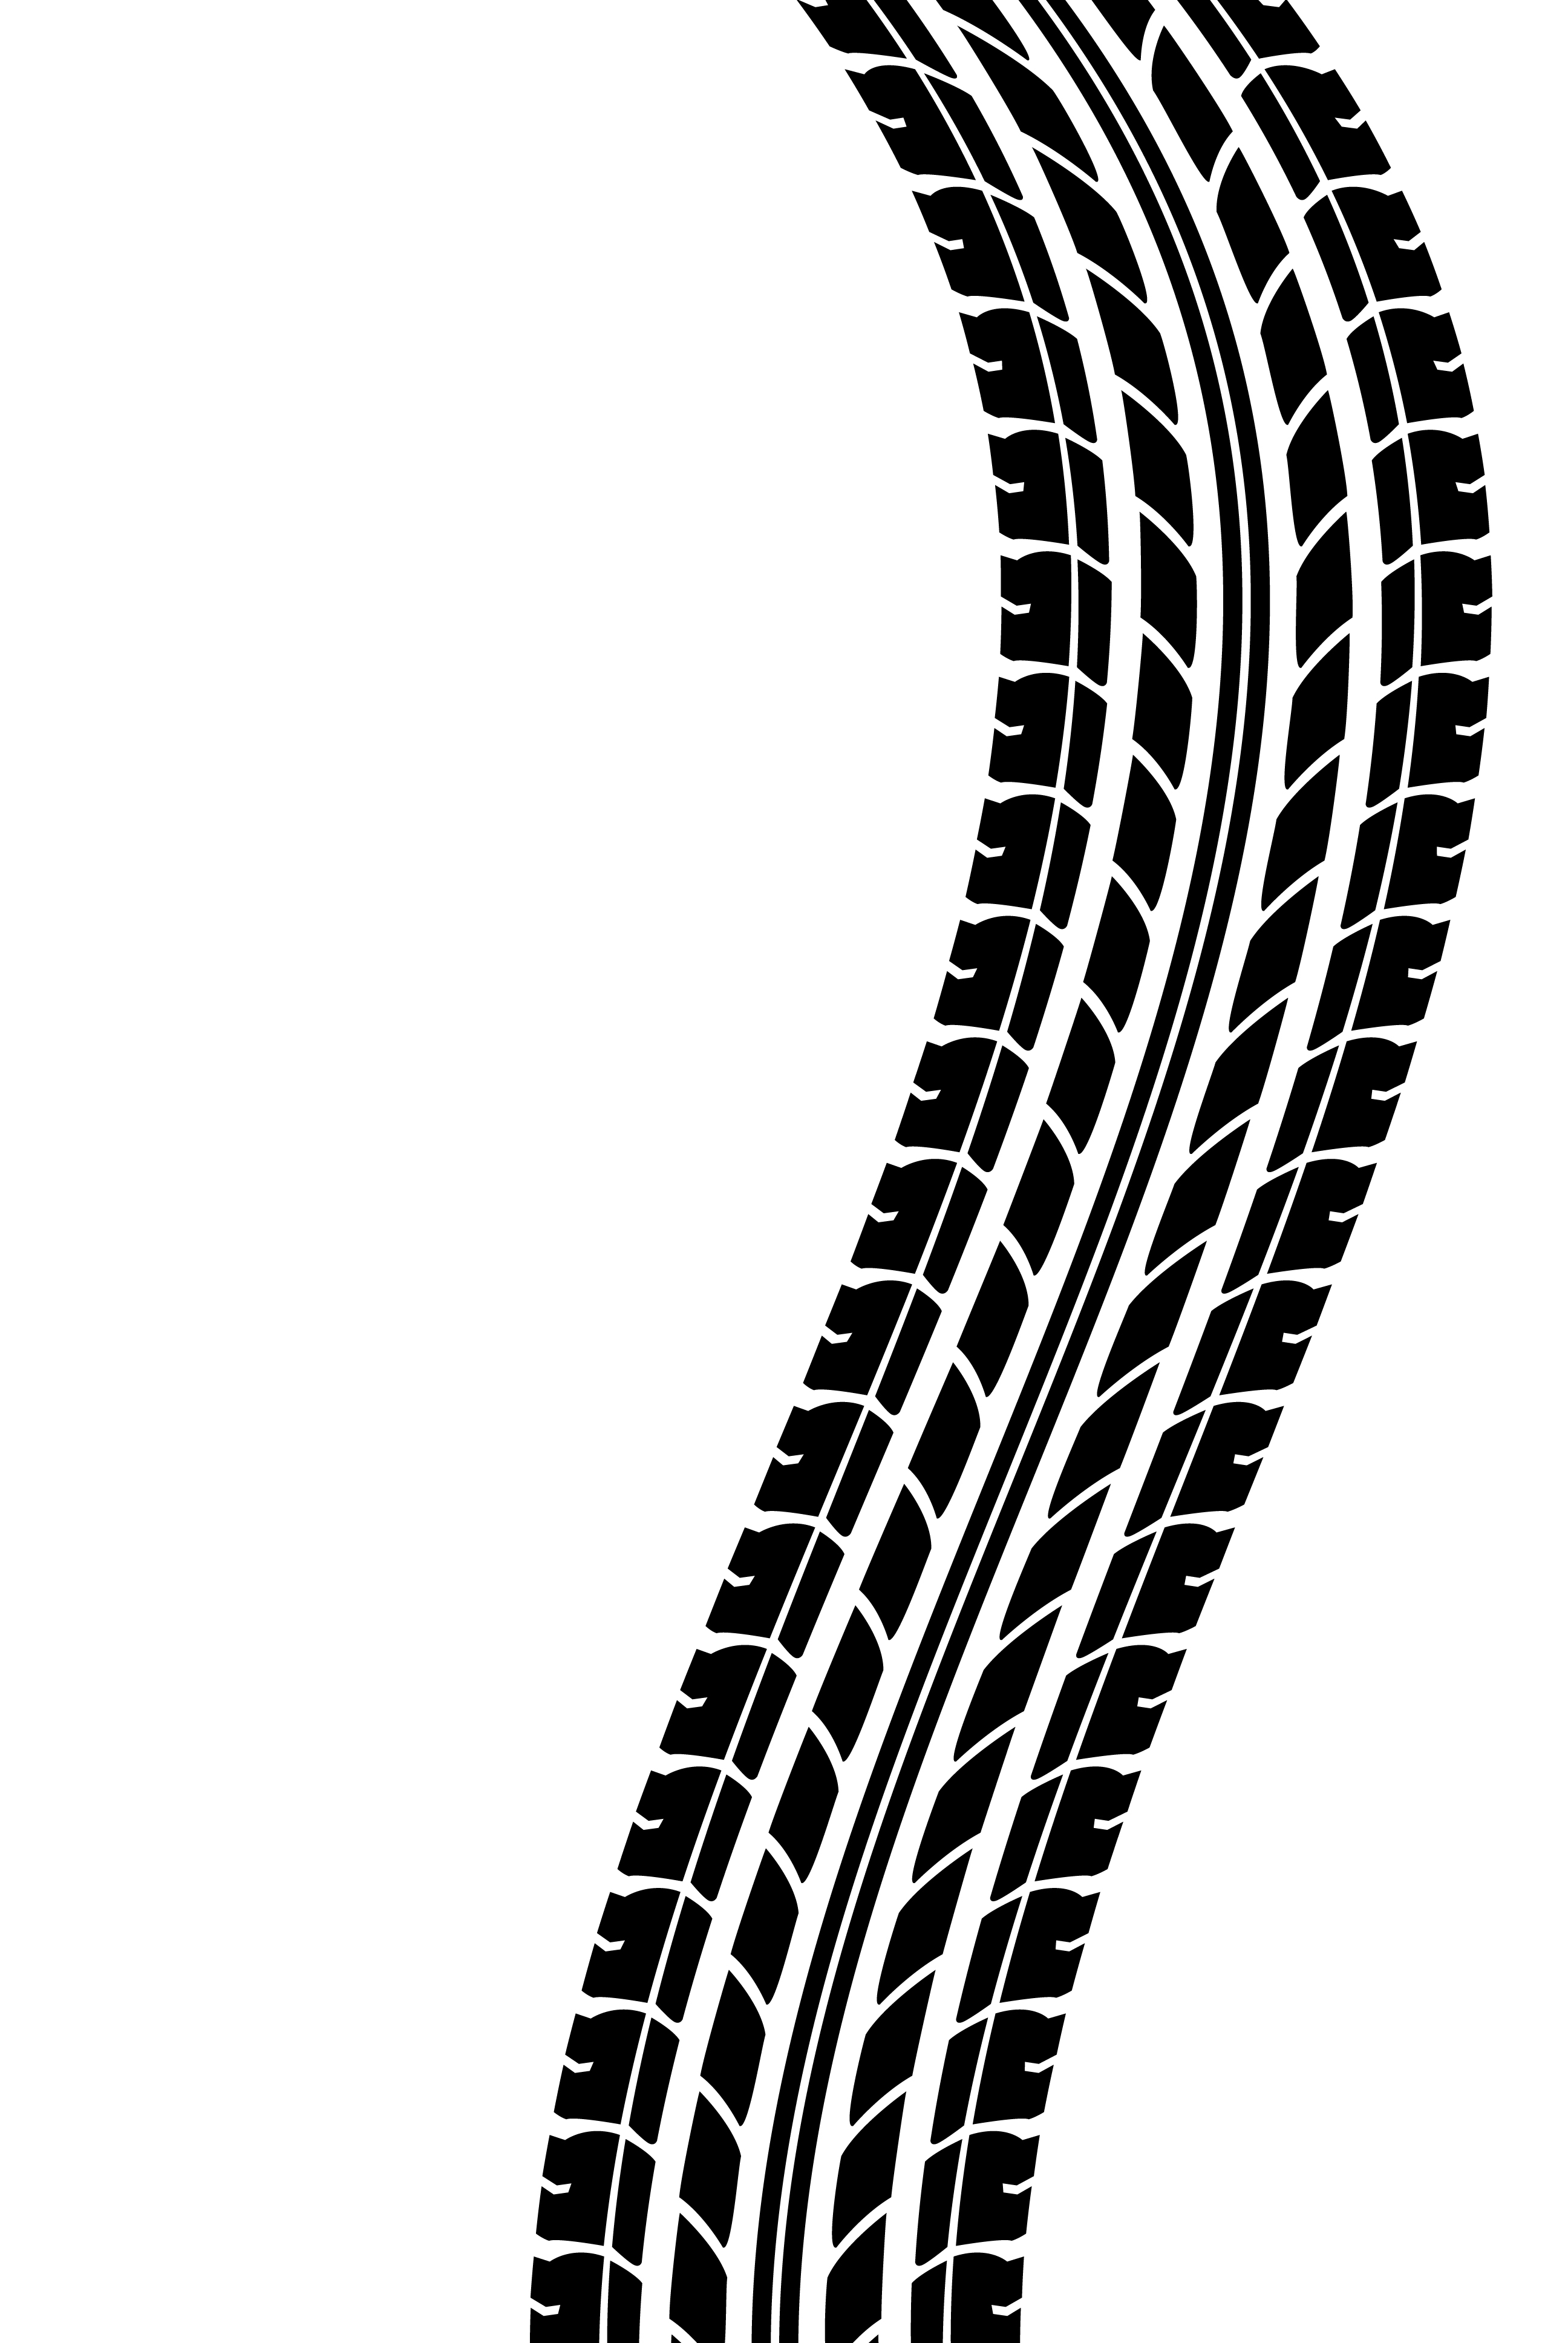 2592x3872 Clip Art Tree With Tire Clipart